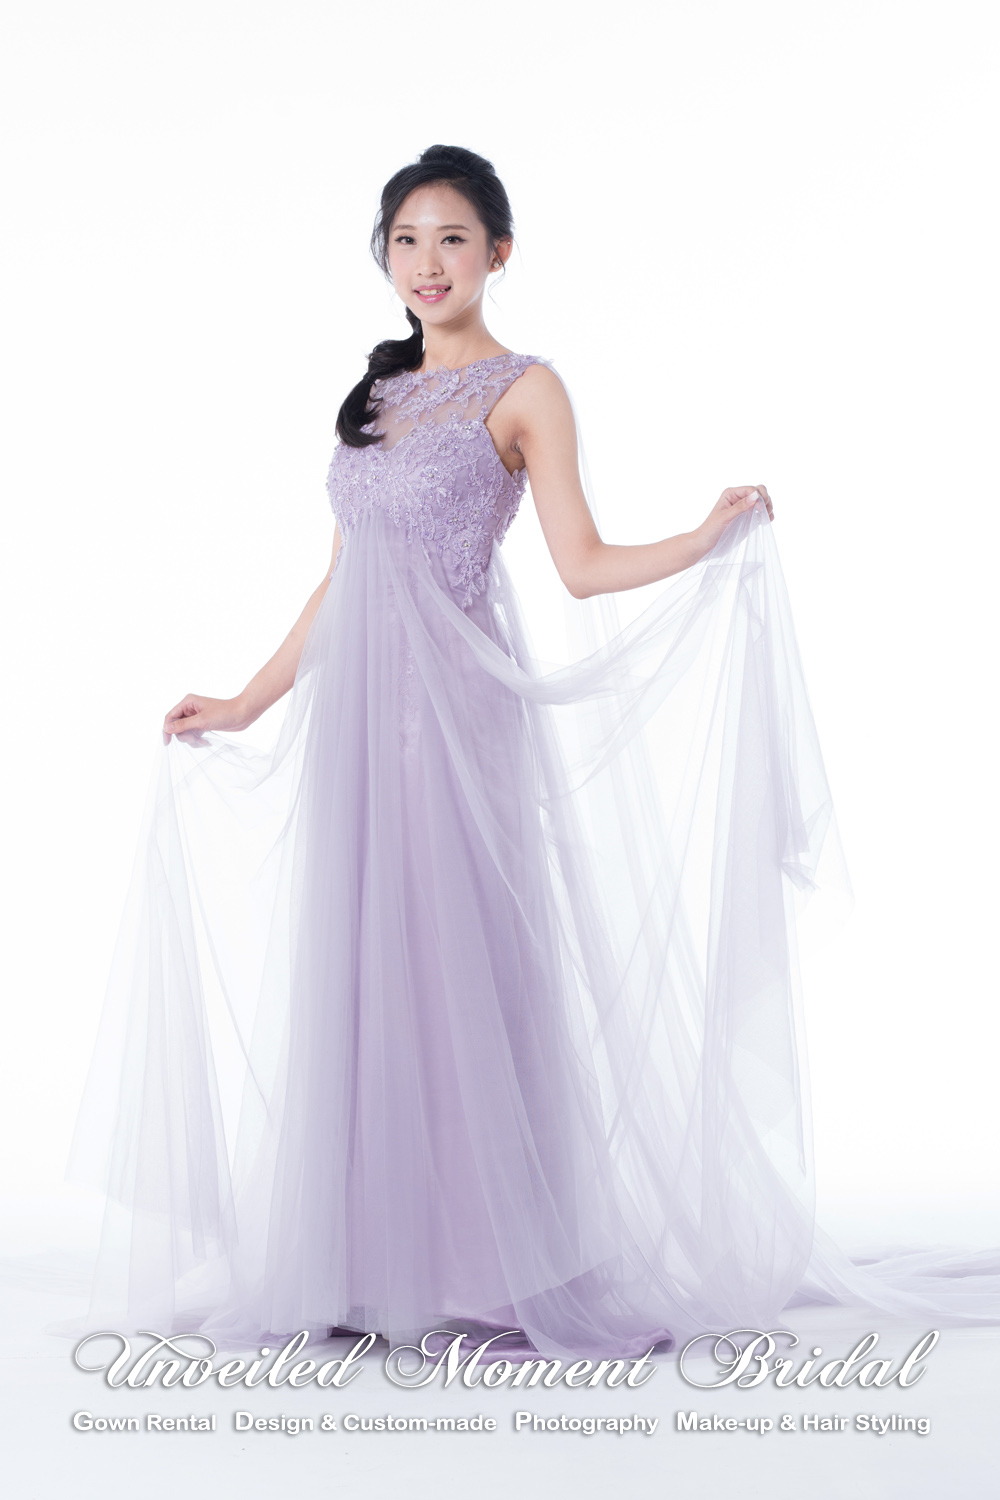 Sleeveless evening gown with sweetheart and see-through boat neckline, see-through low back, lace embellishments and watteau. Colour: Light purple 心形胸, 透視薄紗圓領, 蕾絲釘珠, 透視美背, 飄逸輕紗長披肩及拖尾晩裝